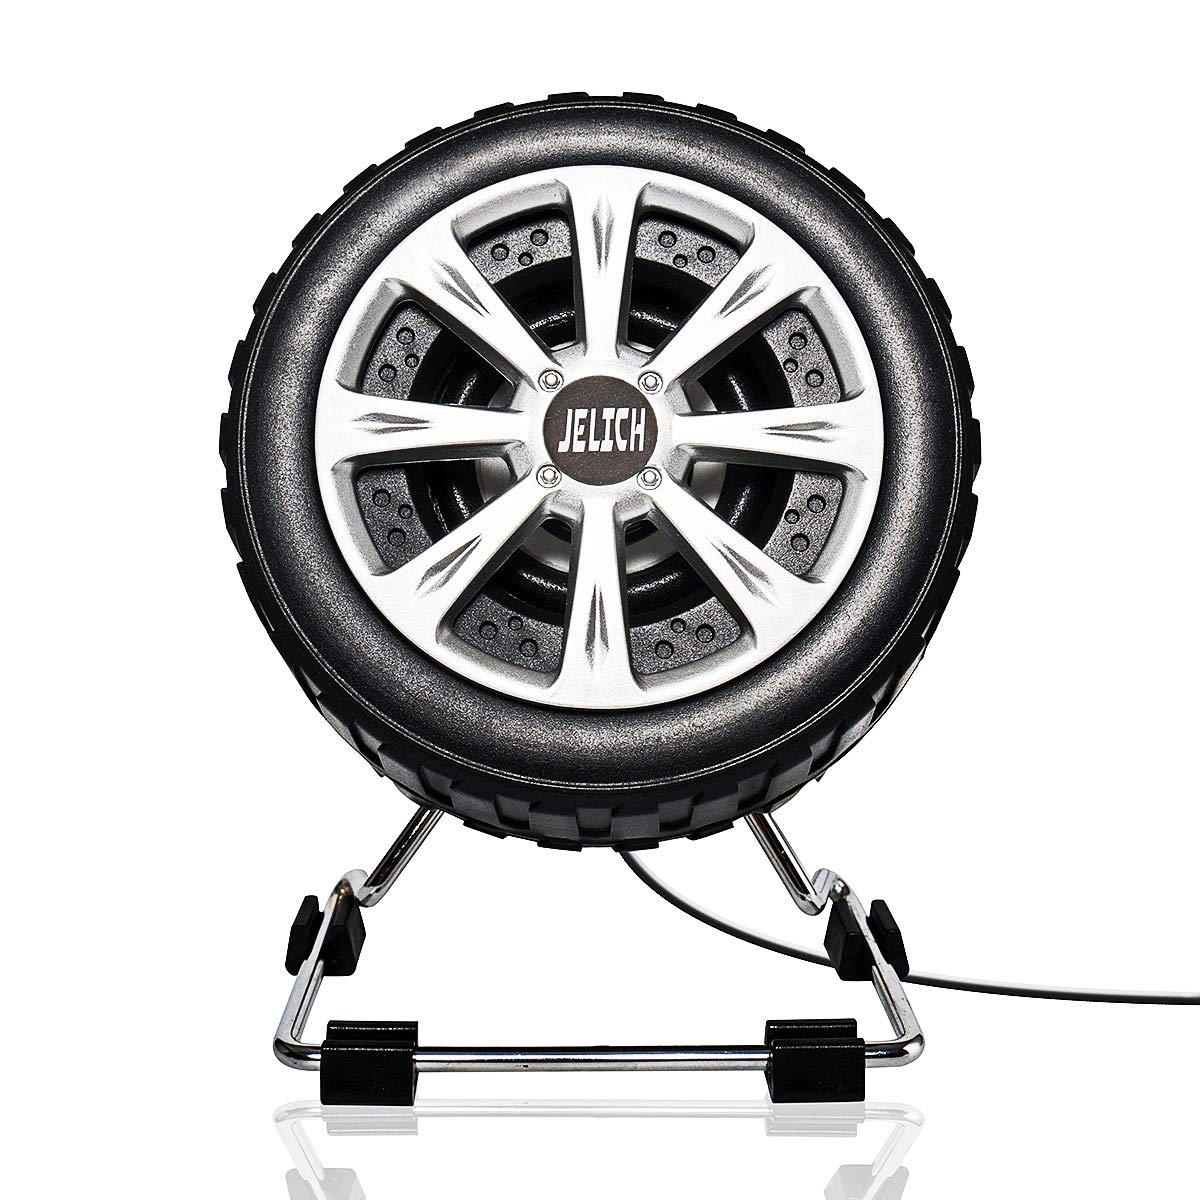 JELICH Tire Shape Computer Speakers - Wired USB Powered Multimedia Small Speakers with light music needs for PC /Desktop /Laptops /Smart Phone